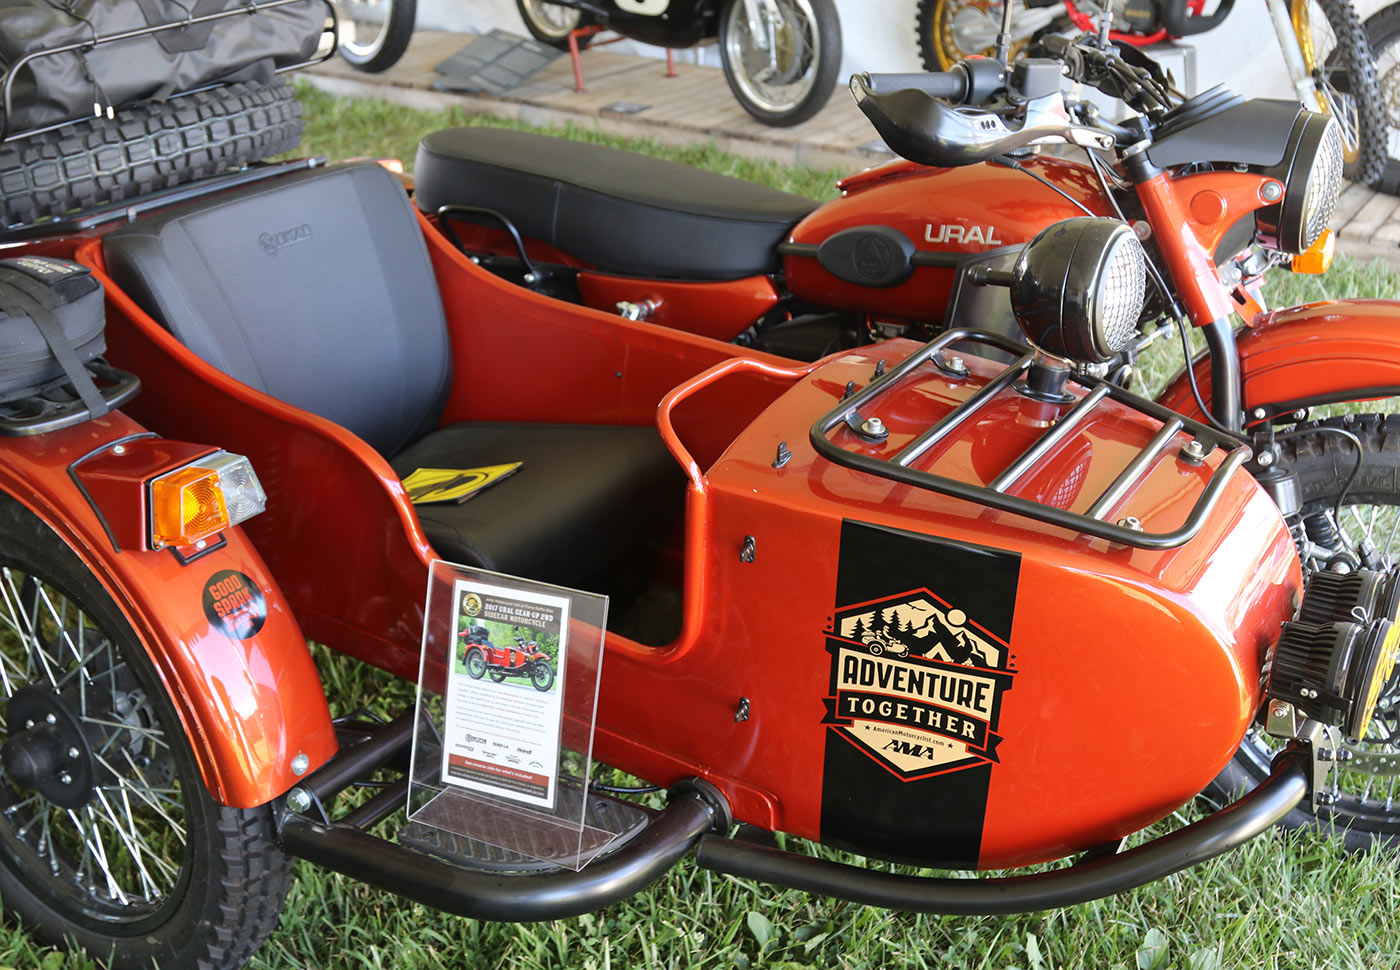 The Ural Gear Up raffle bike is going to make someone really happy!